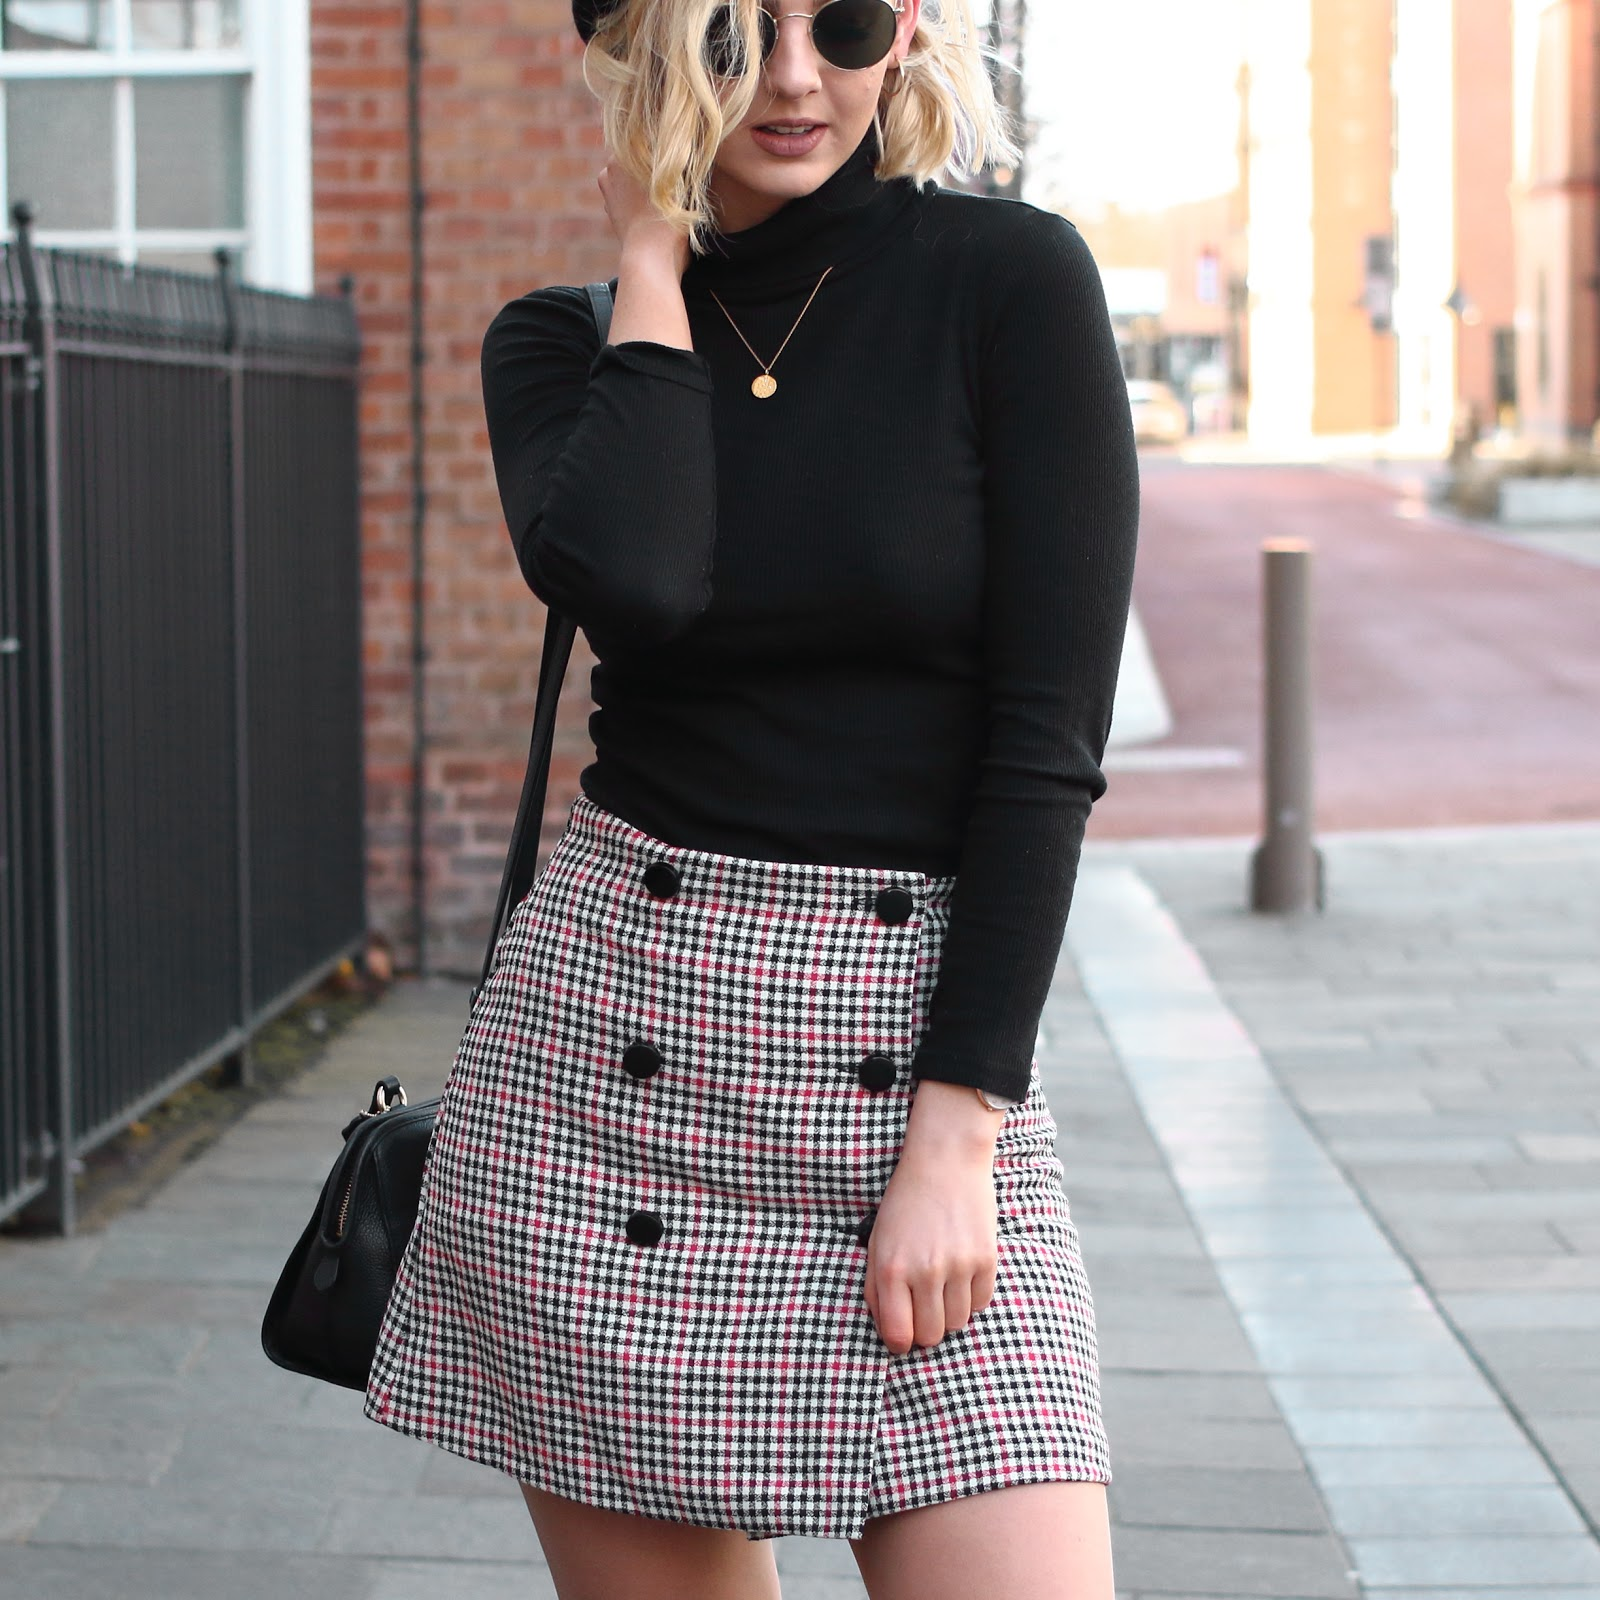 Asos, check, skirt, tartan, pattern, ootd, blogger, uk, fashion, black, polo, neck, jumper, beret, styling